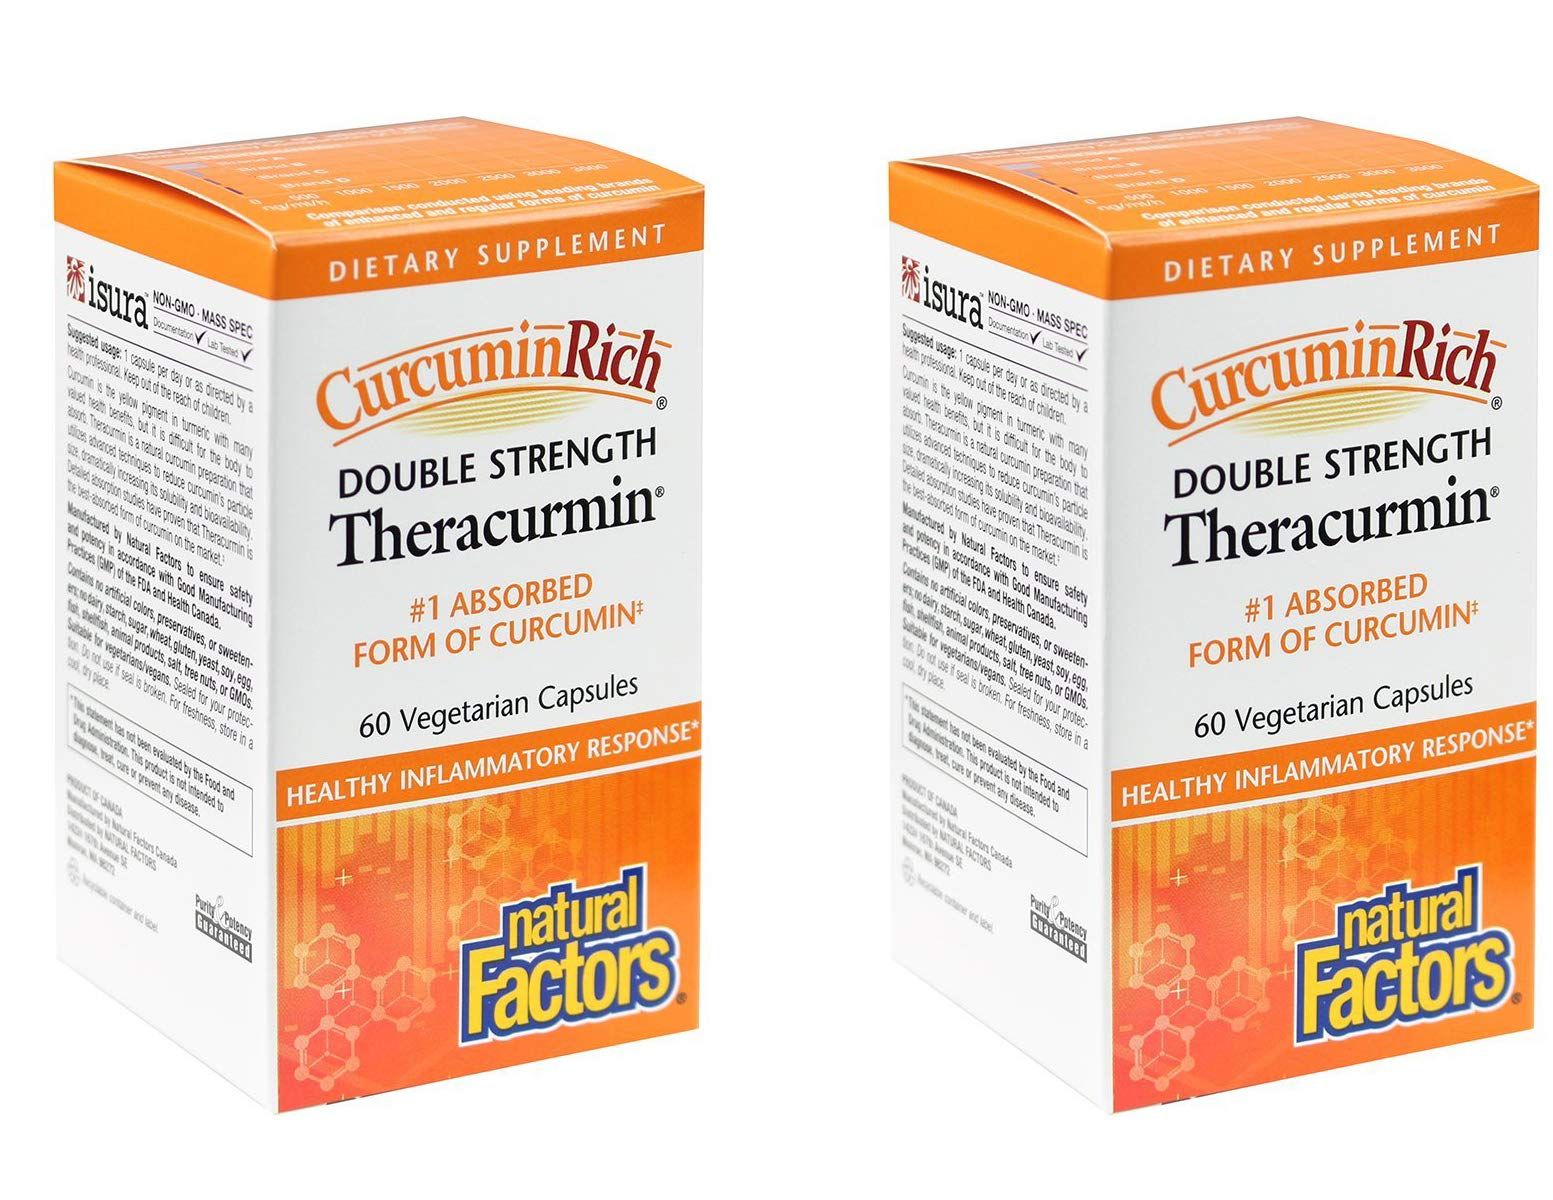 Natural Factors CurcuminRich Double Strength Theracurmin (2 Pack), 120 Capsules Total